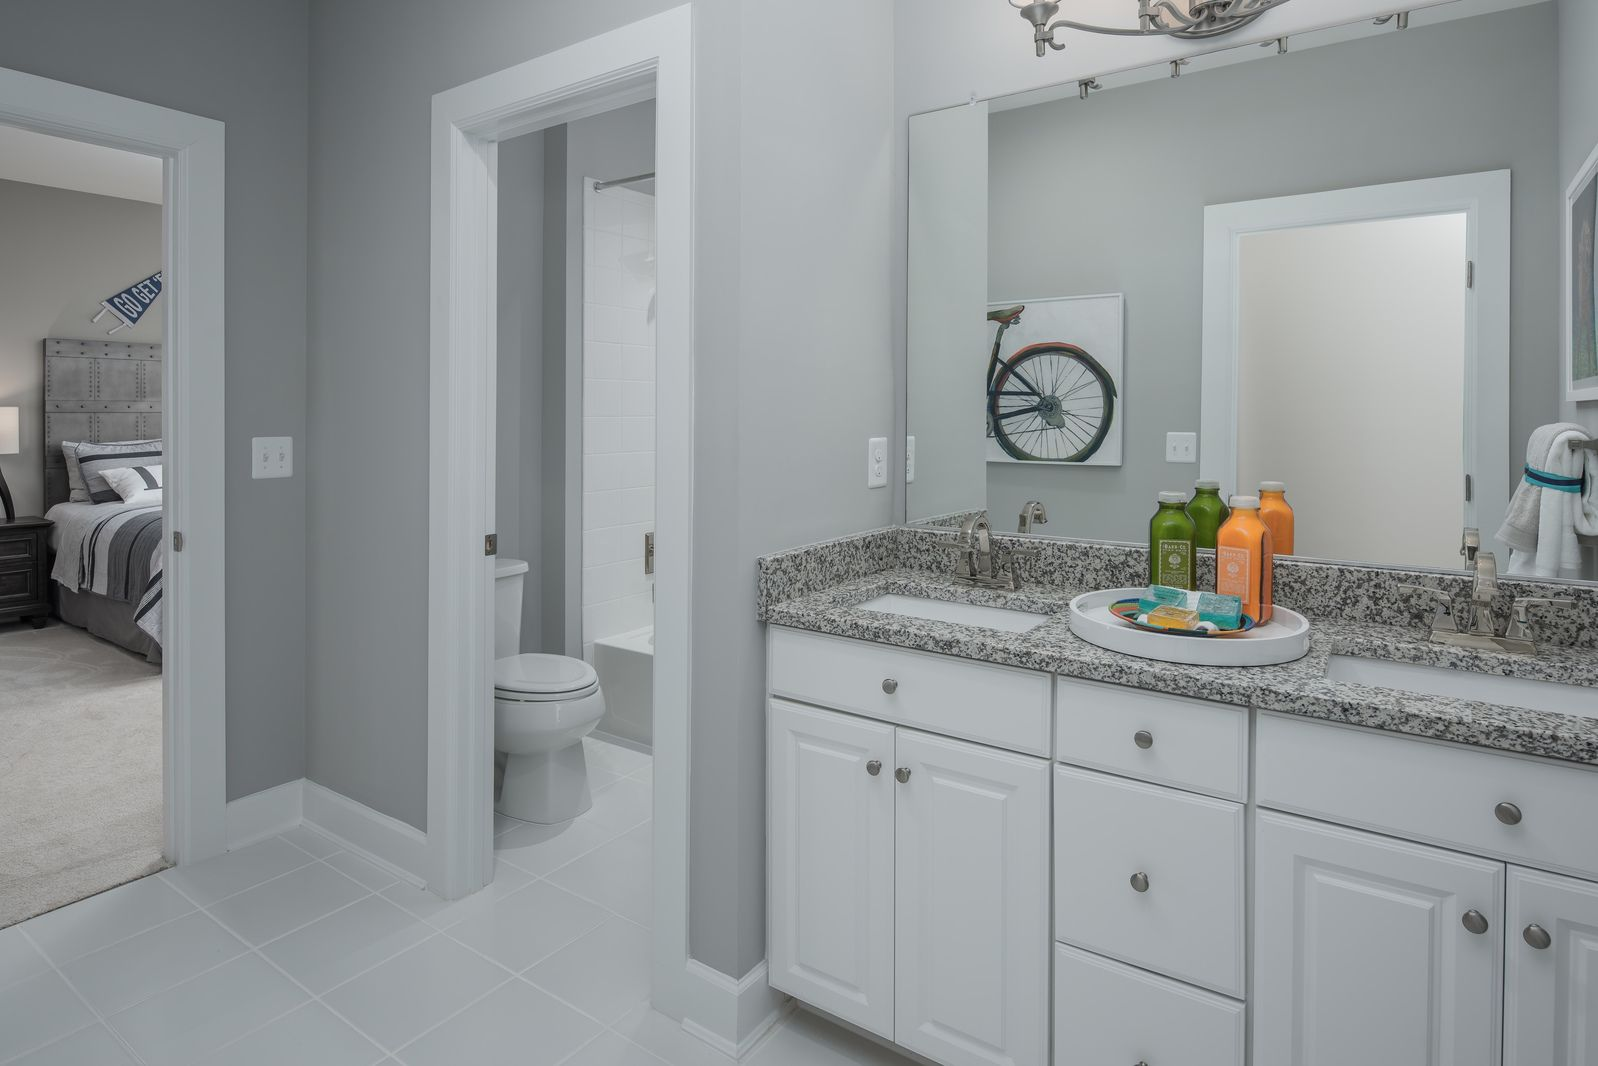 Bathroom featured in the Danville By NVHomes in Washington, MD